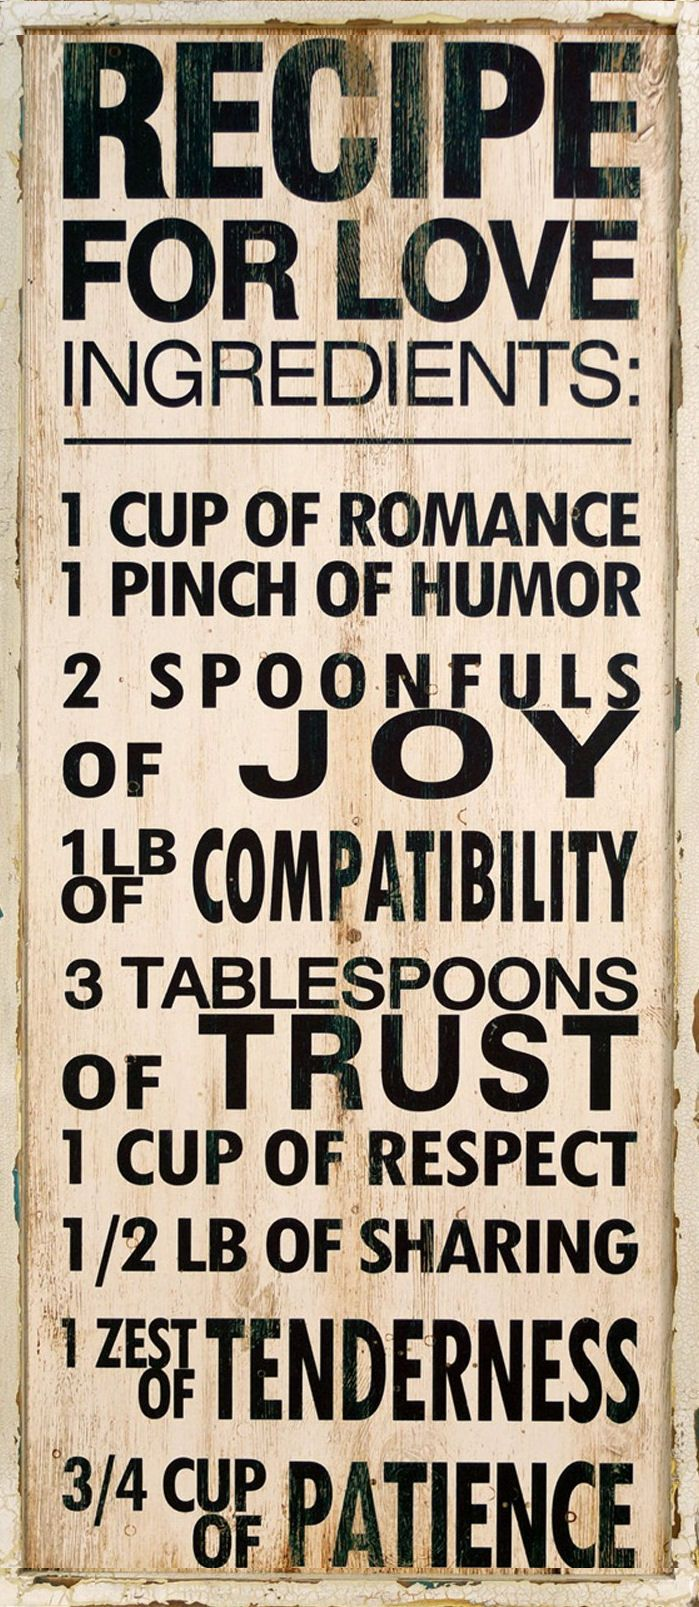 Recipe for Love ♥ I have my own amounts thought of for this same recipe. I need a lb. of romance, and 2 lbs. of patience ;)